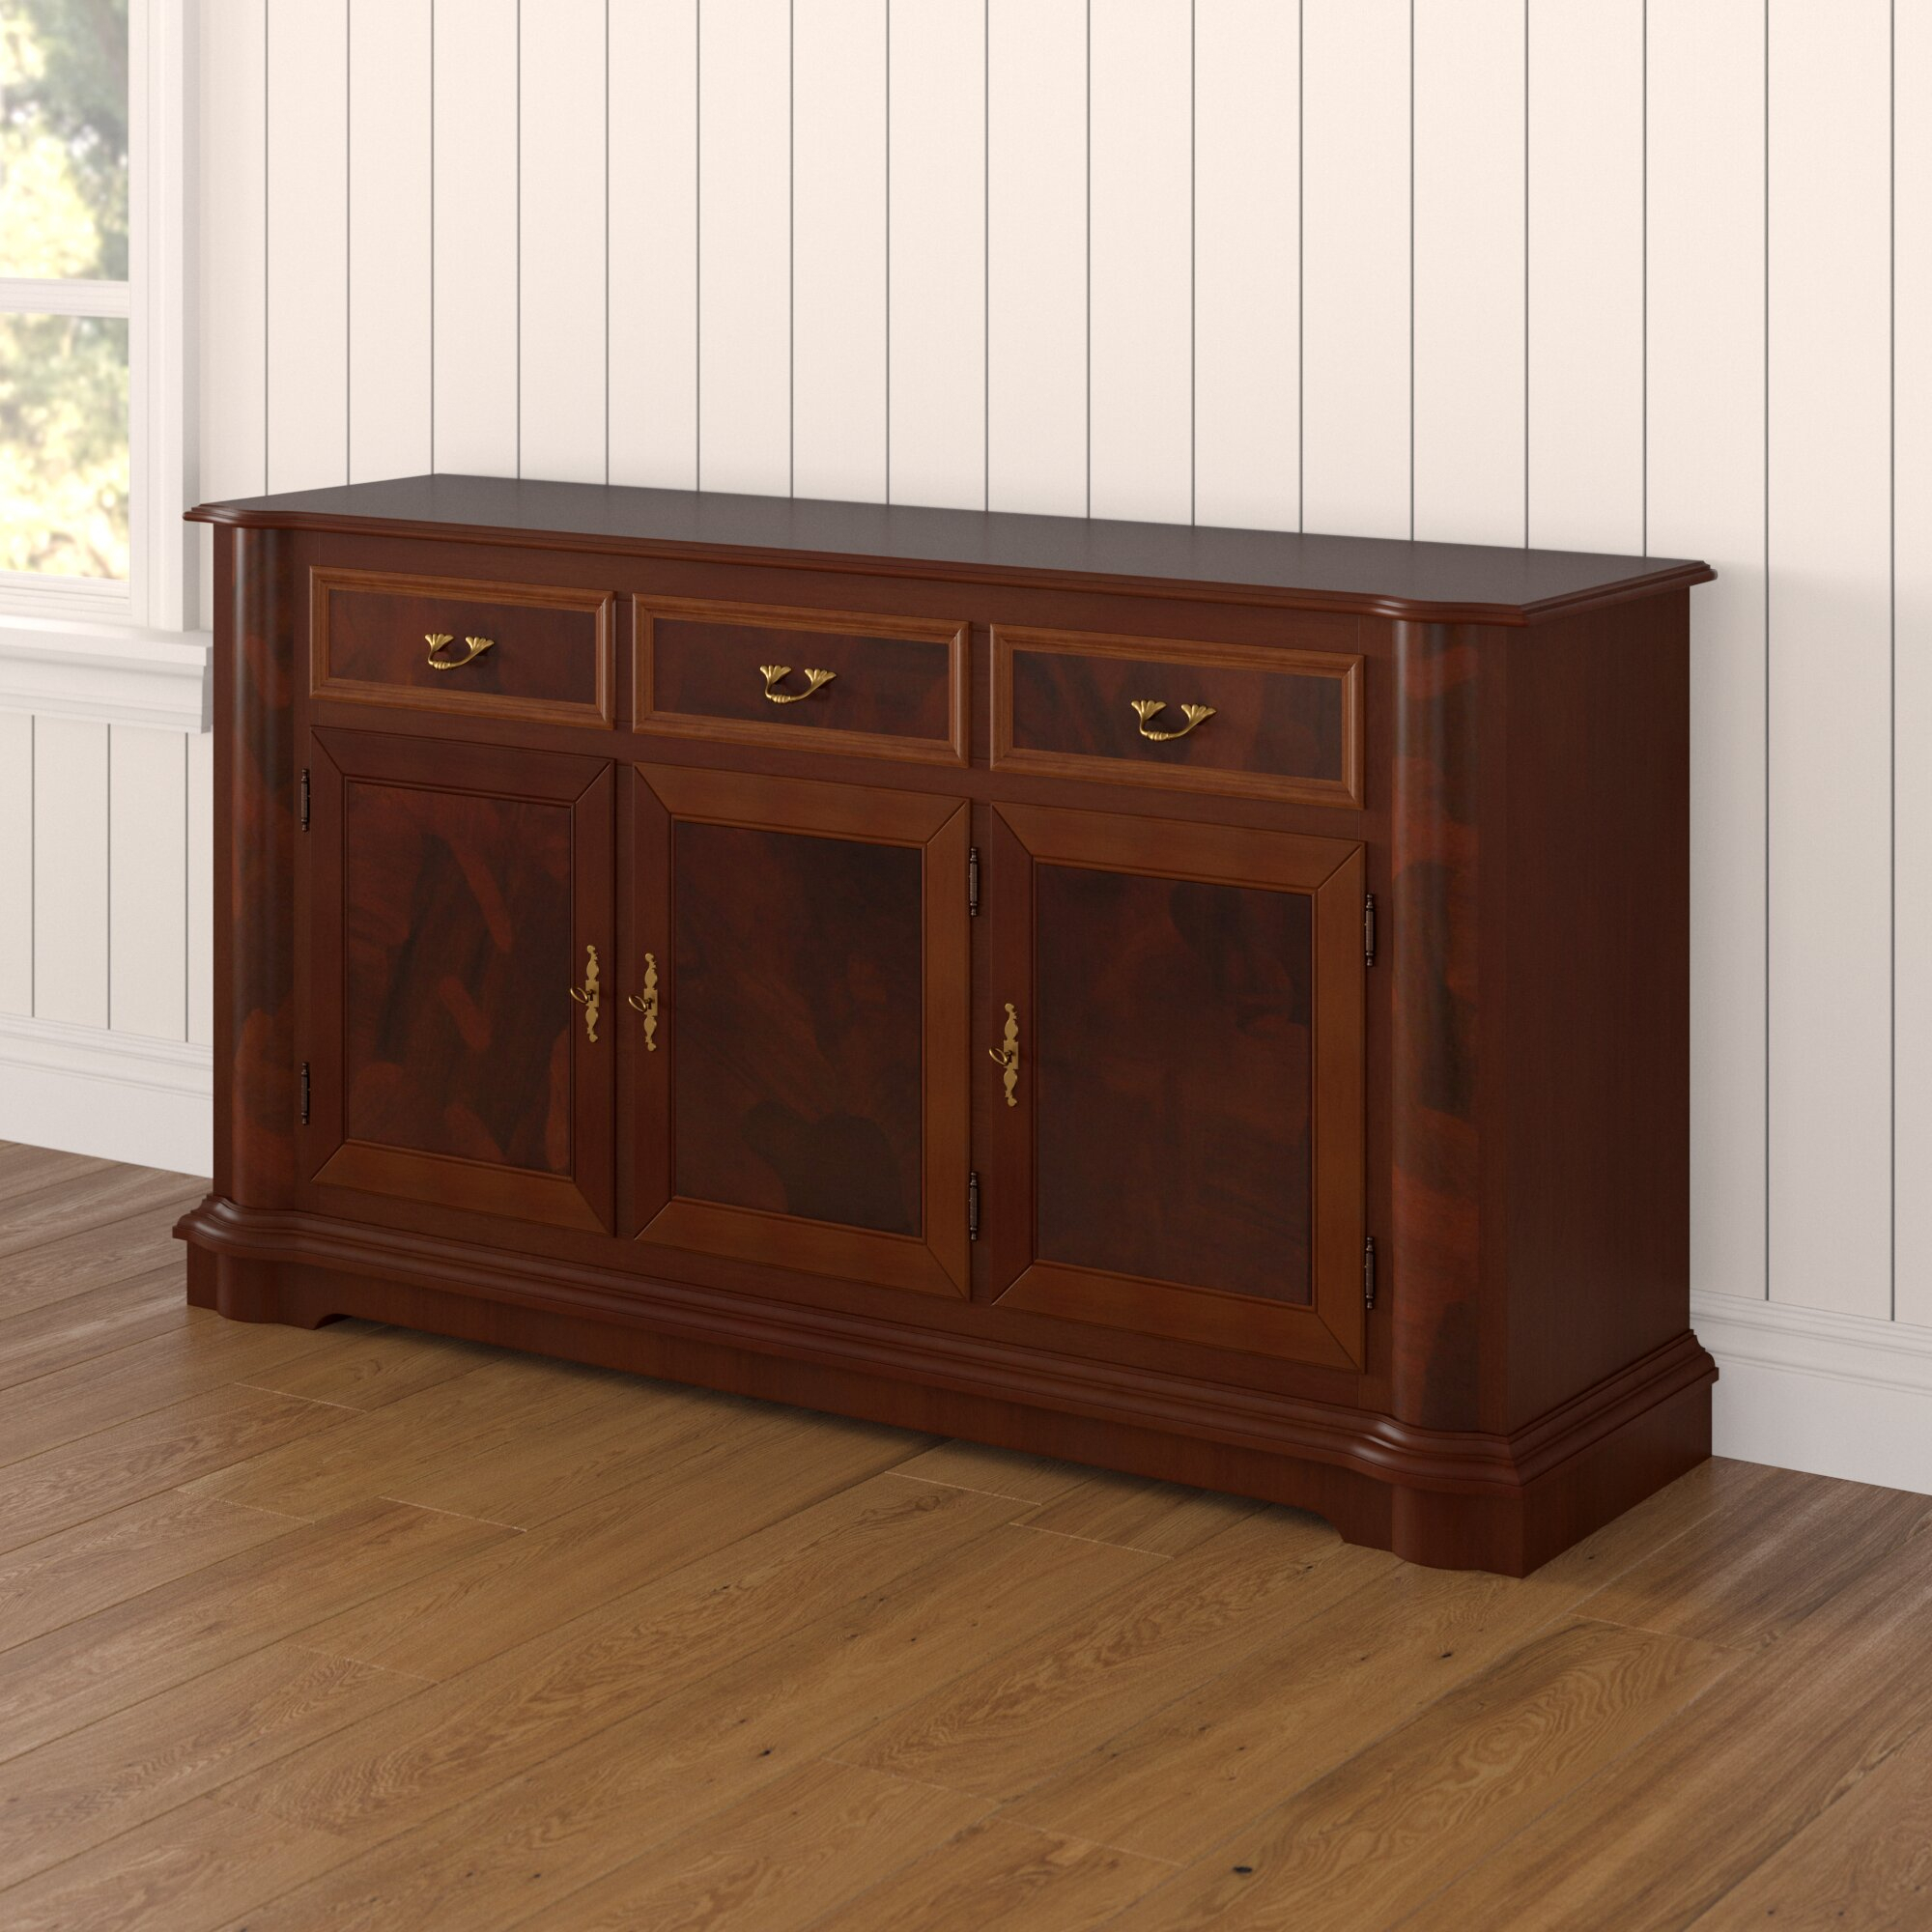 Sideboard Acadia with Sideboards by Wildon Home (Image 10 of 30)